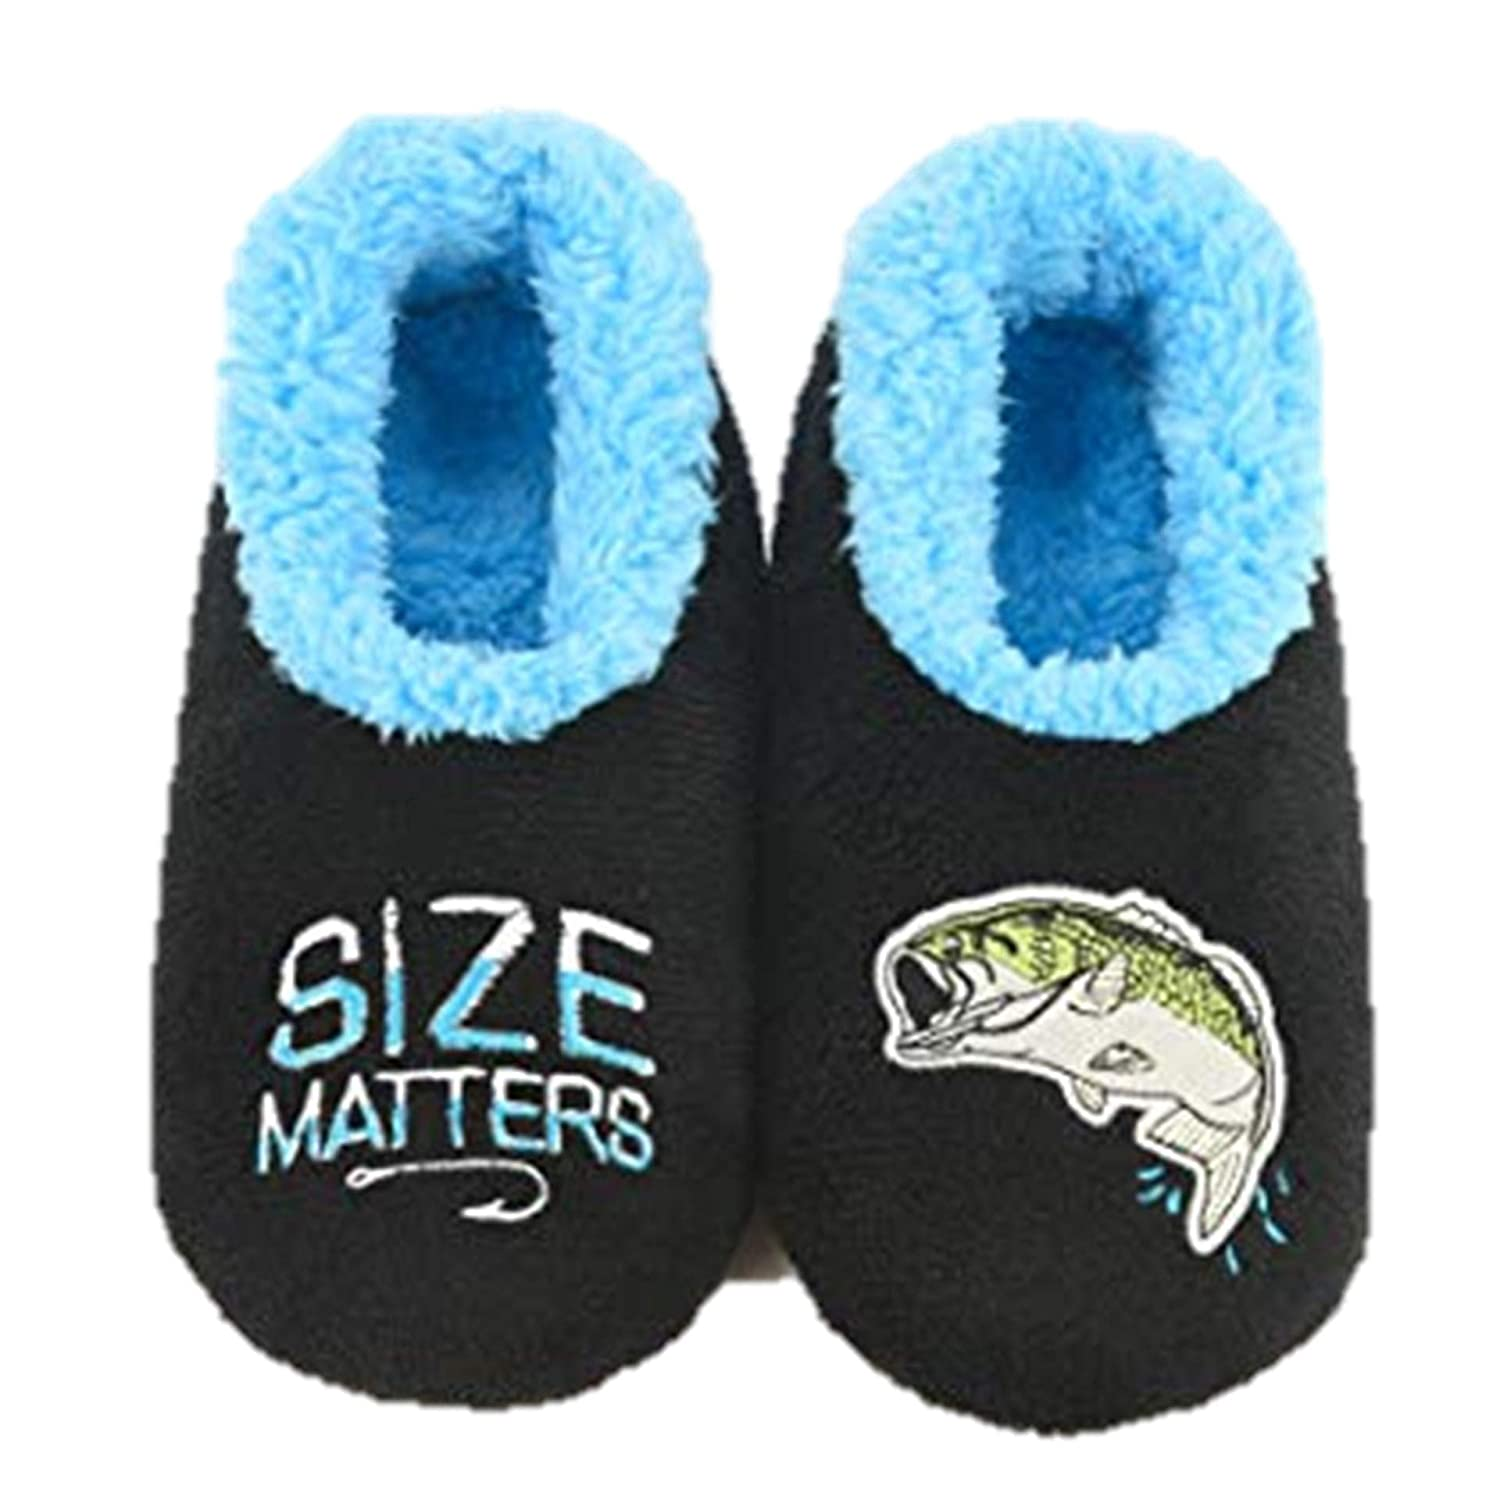 Snoozies Mens Pairable Slippers Multiple Sizes and Styles Comfortable Slippers for Men Soft Sole Mens House Slippers Fuzzy Mens Slipper Socks